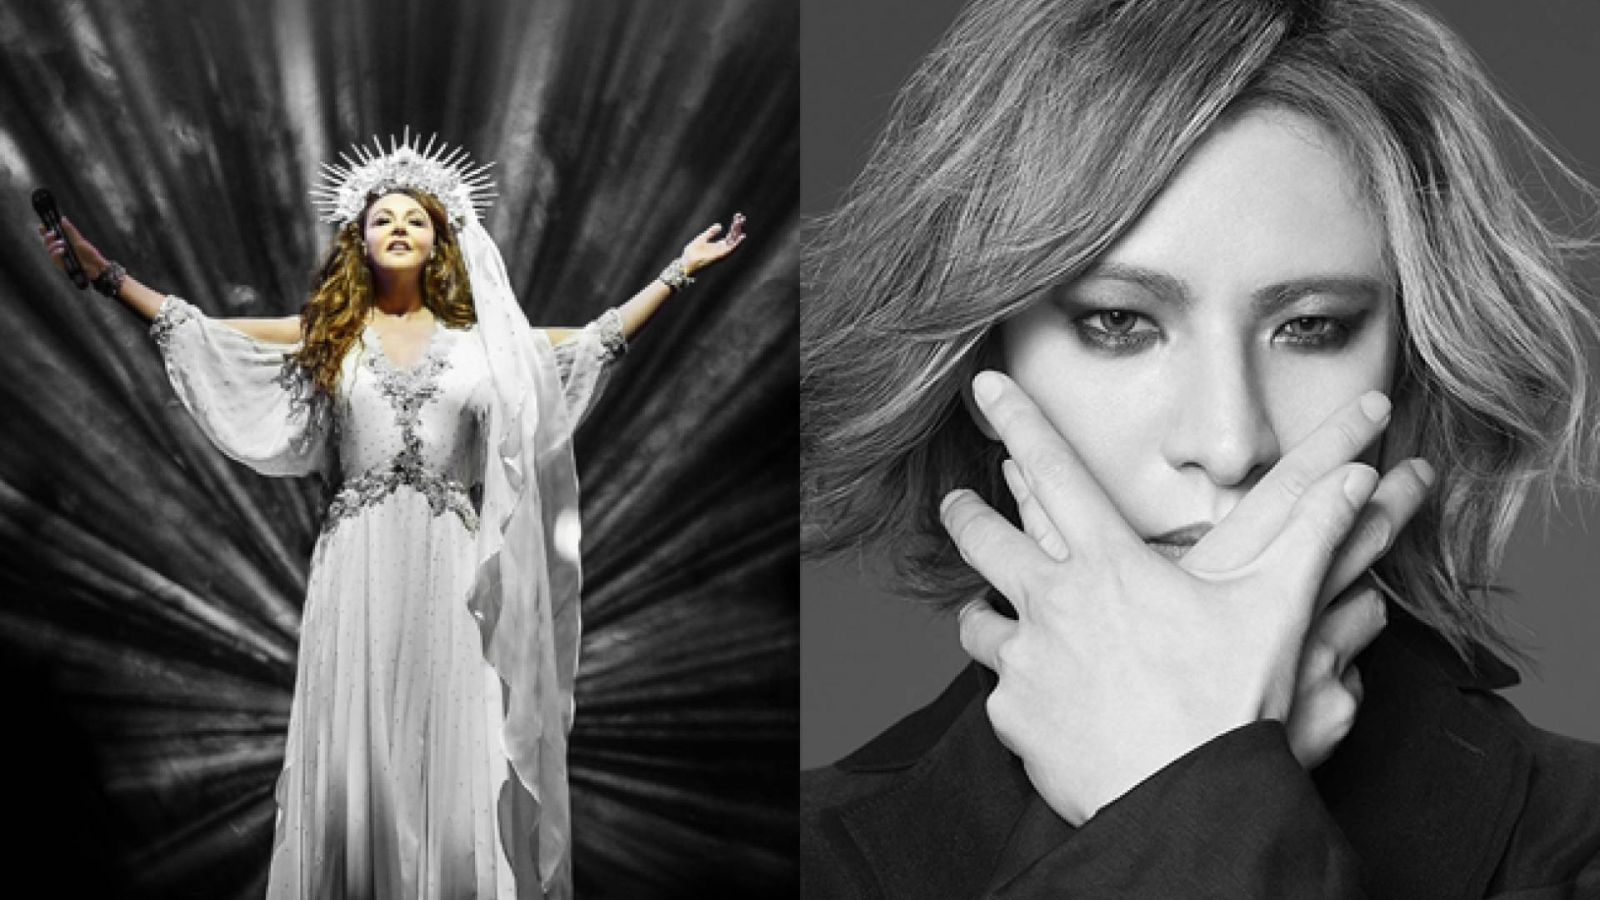 YOSHIKI to Perform at London's Royal Albert Hall; 2019 Dinner Shows Sell Out with Record High Demand © YOSHIKI and Sarah Brightman